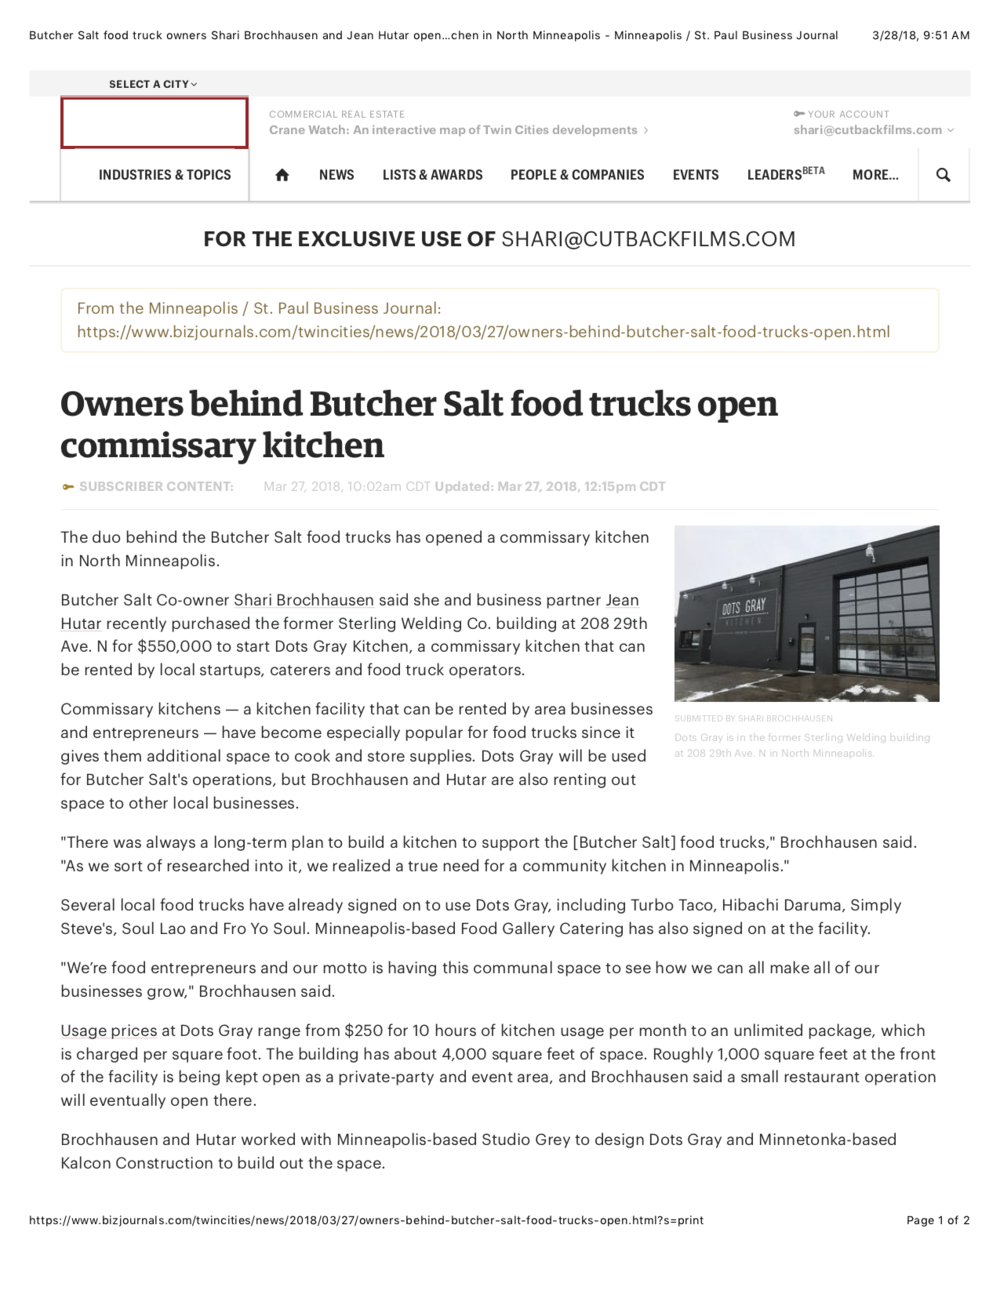 Butcher Salt food truck owners Shari Brochhausen and Jean Hutar open commissary kitchen in North Minneapolis - Minneapolis : St. Paul Business Journal.png